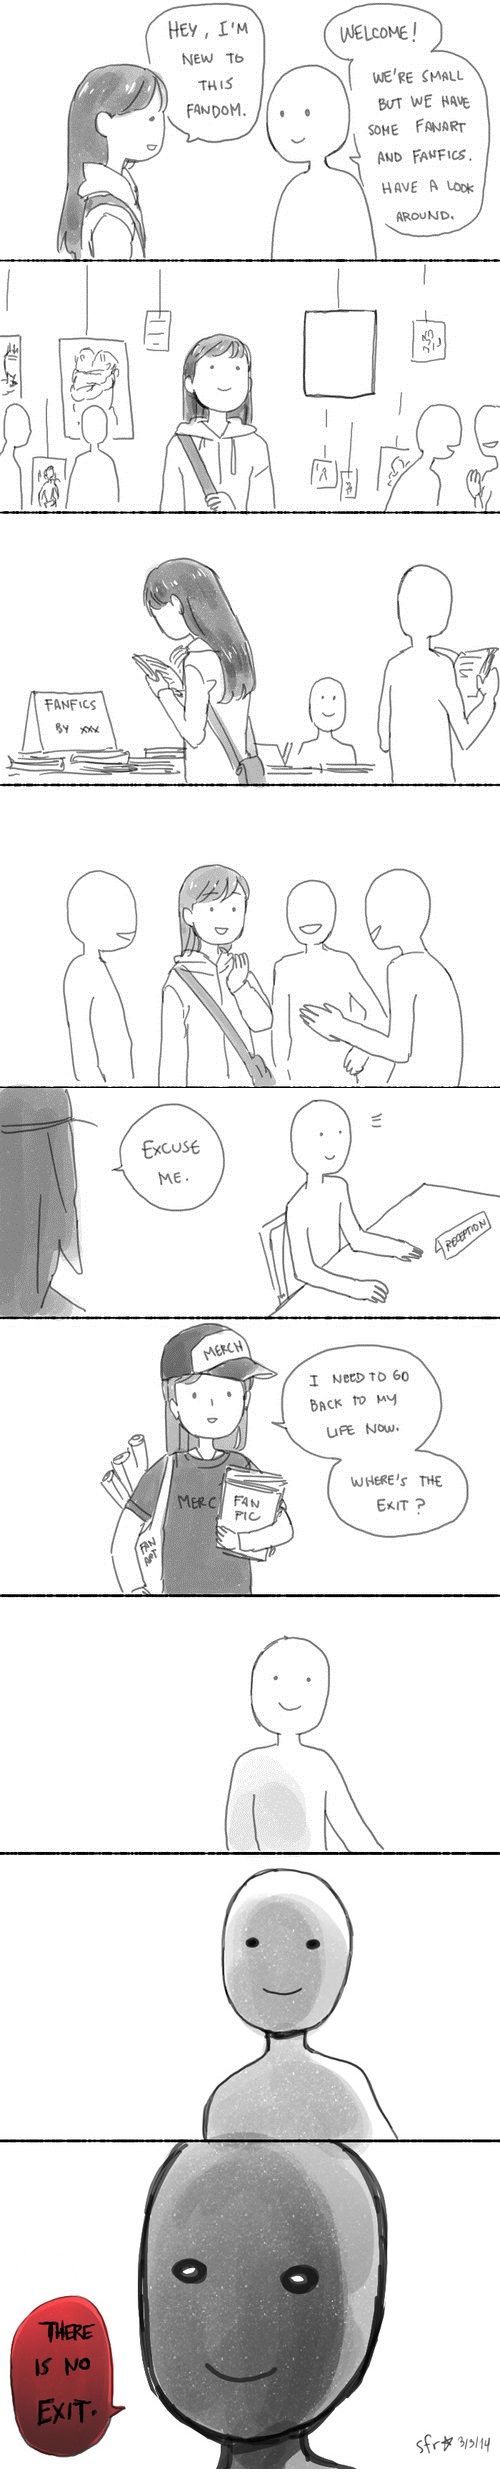 BWAHAHAHAHAHA I WISH THIS WAS REALLY WHAT HAPPENS WHEN YOU JOIN A FANDOM